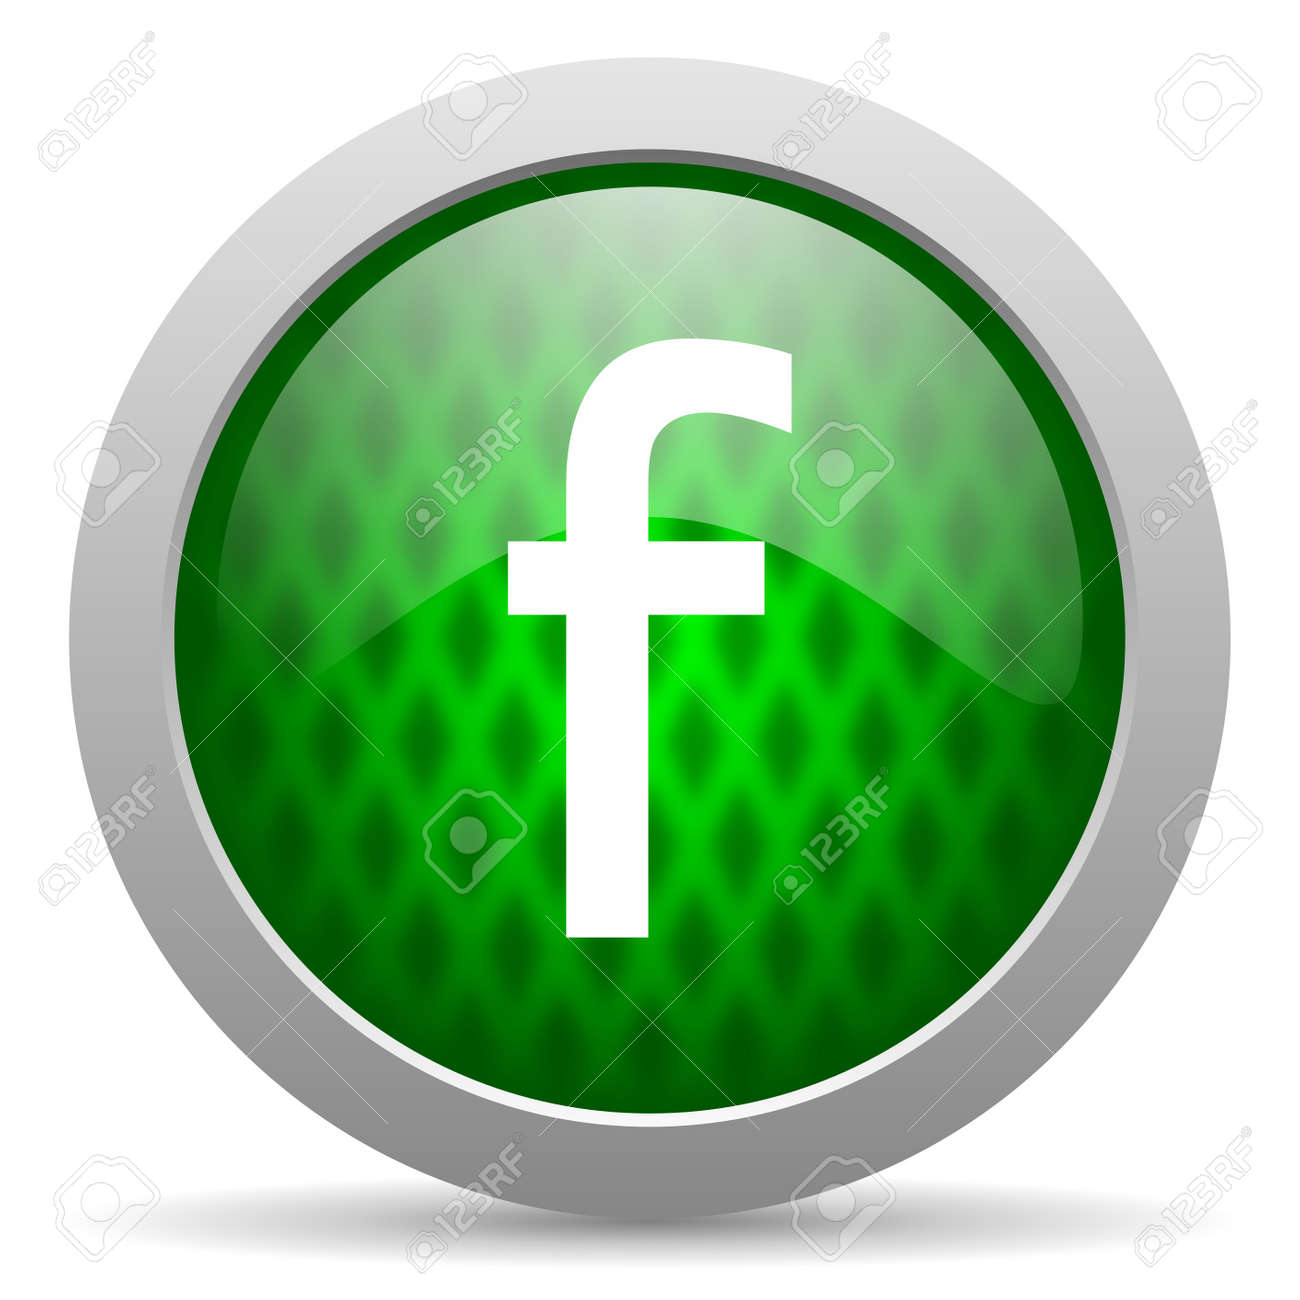 F icon Stock Photo - 15417207